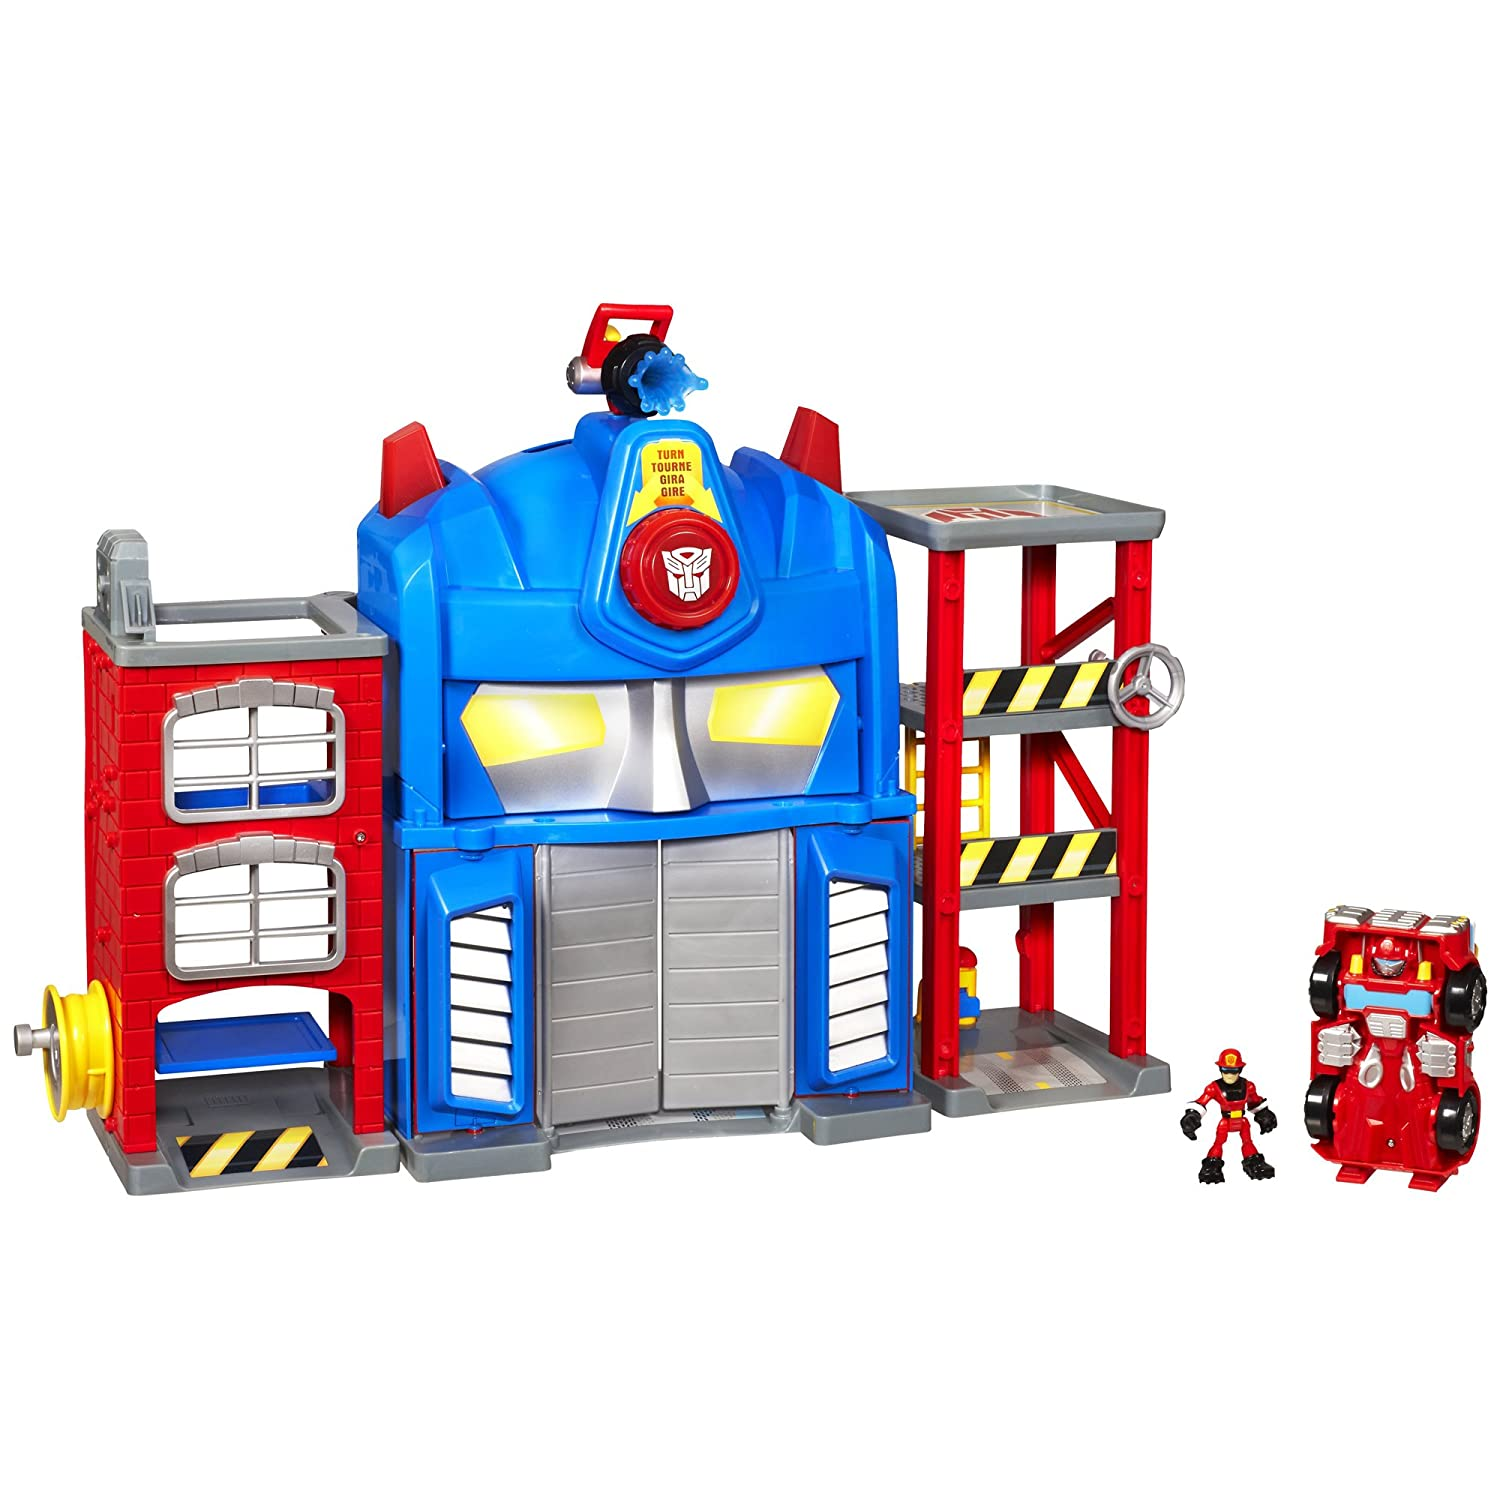 House Fire Rescue Rescue Optimus Prime Fire